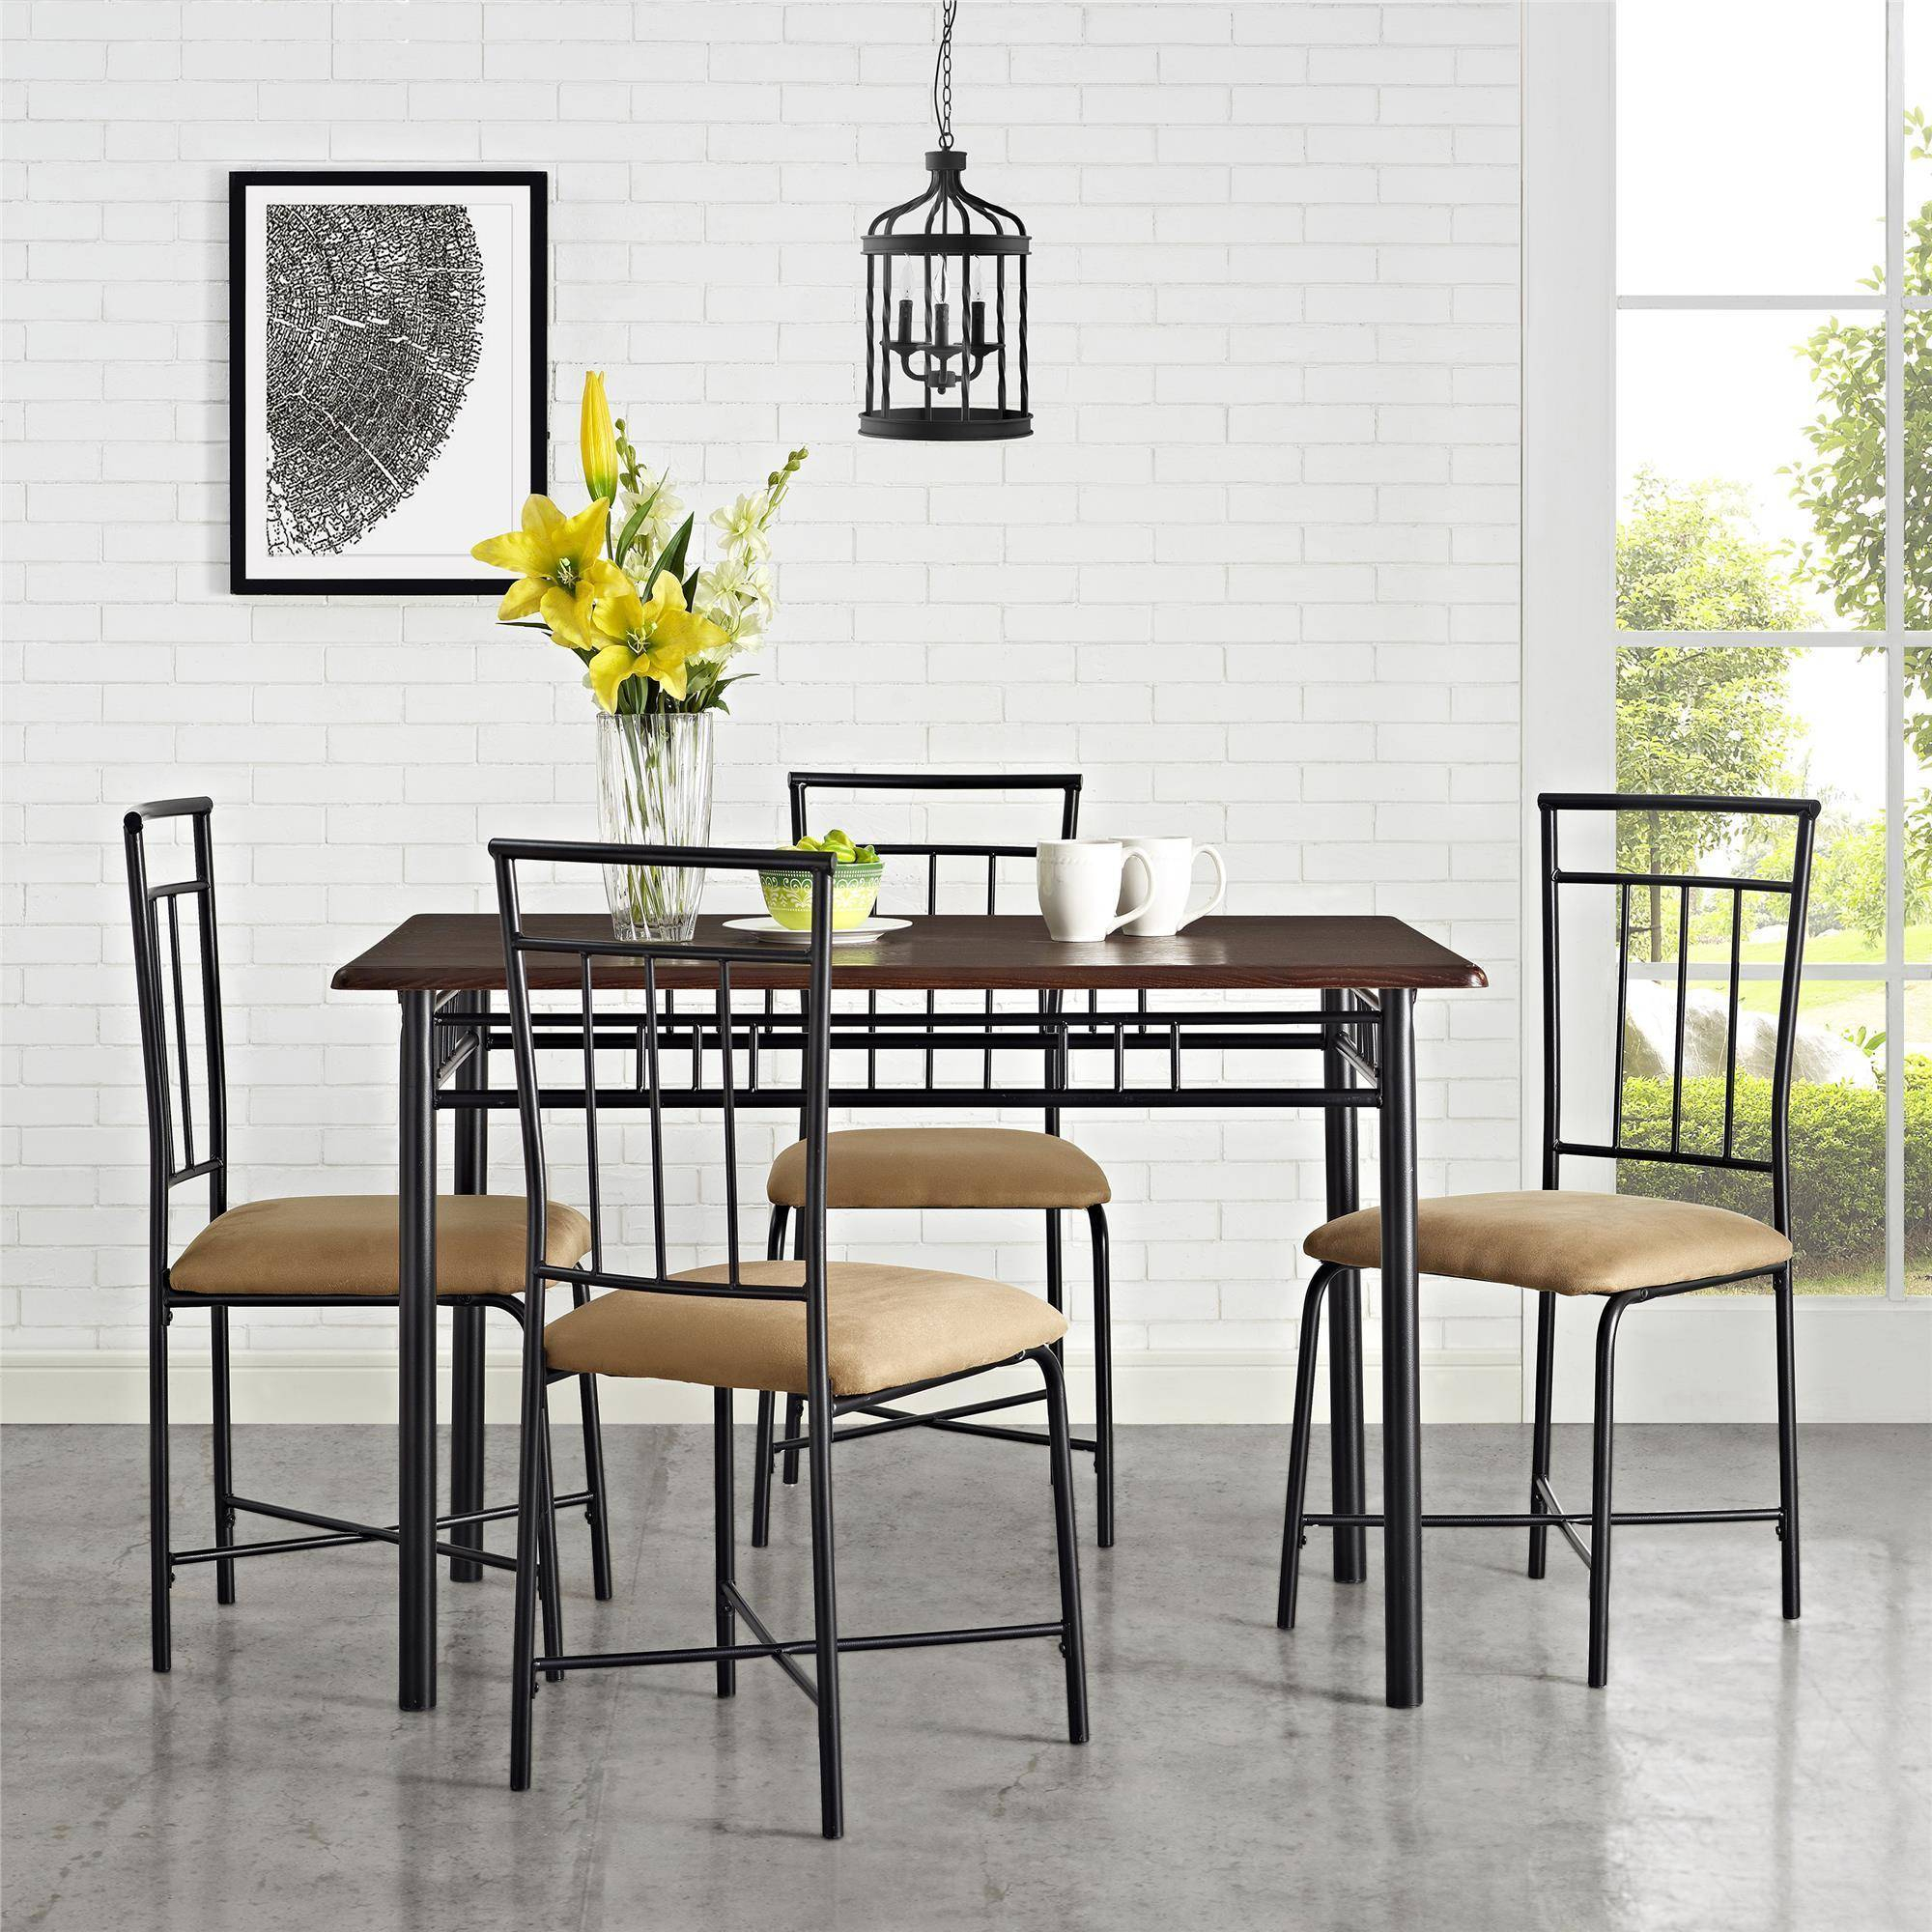 Metropolitan 3 Piece Dining Set, Multiple Finishes Pertaining To Most Recent Rossiter 3 Piece Dining Sets (View 9 of 20)